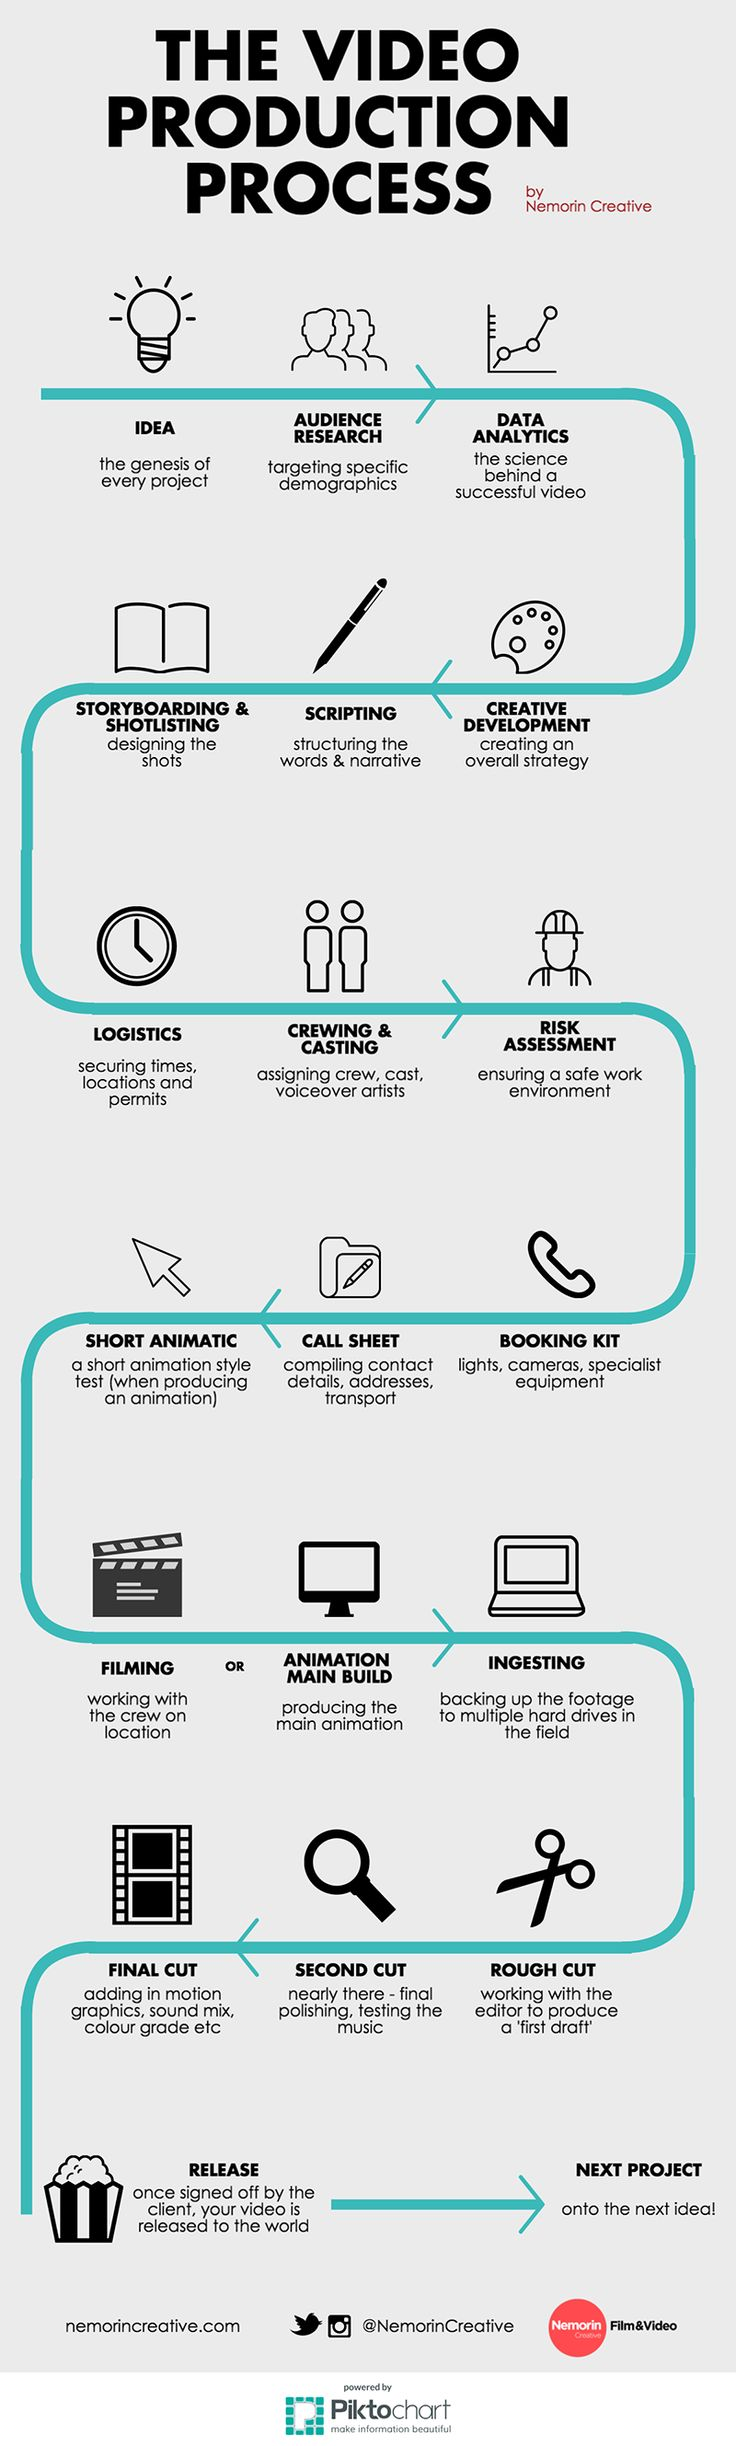 The Video Production Process Infographic